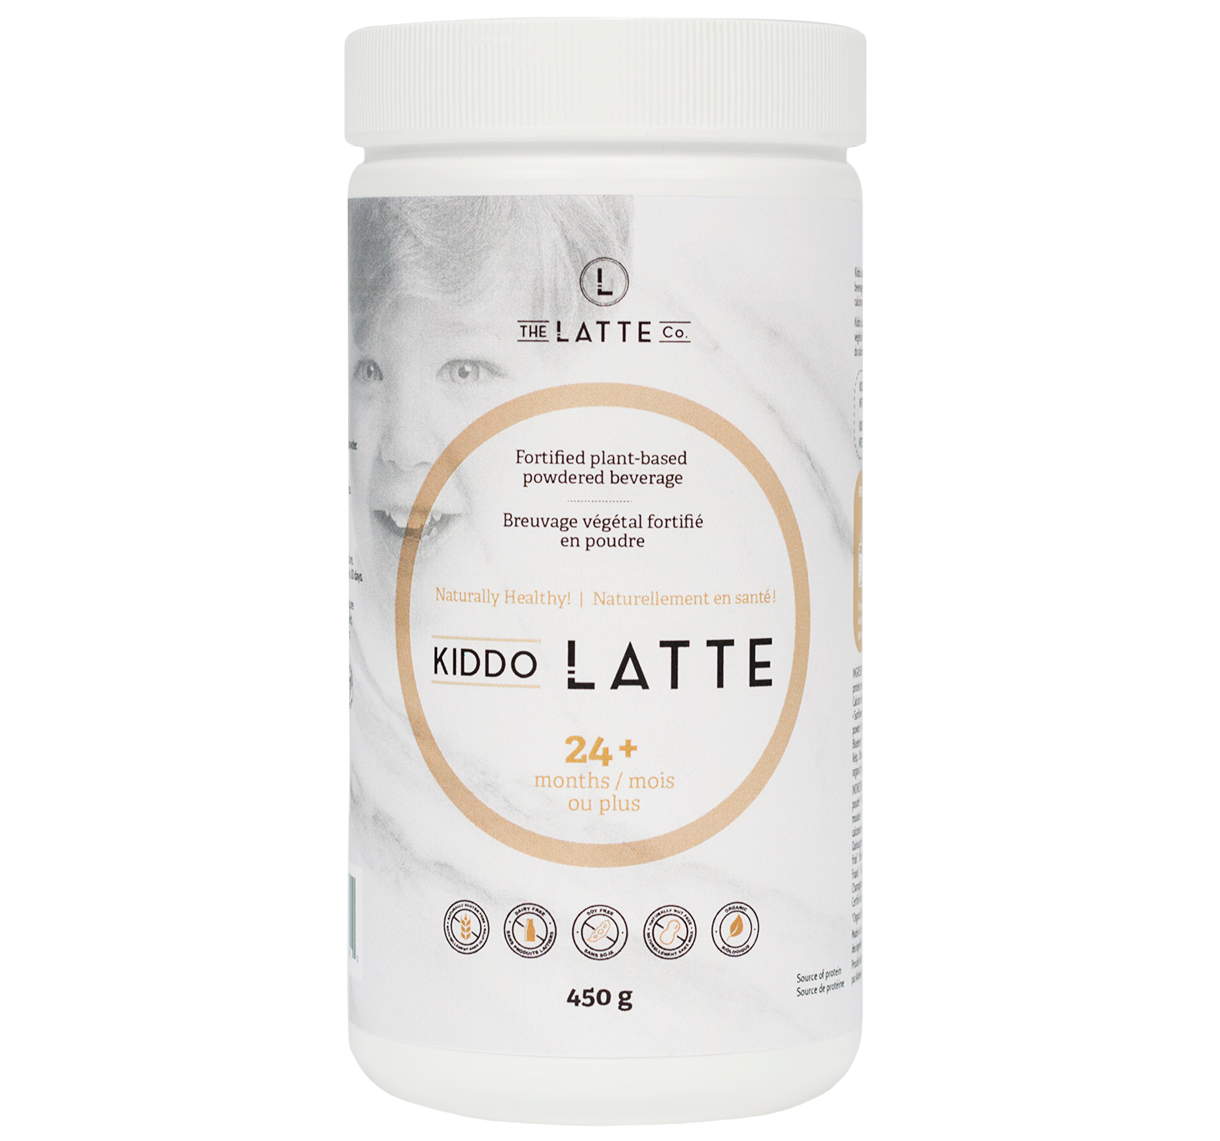 Bottle of Kiddo Latte